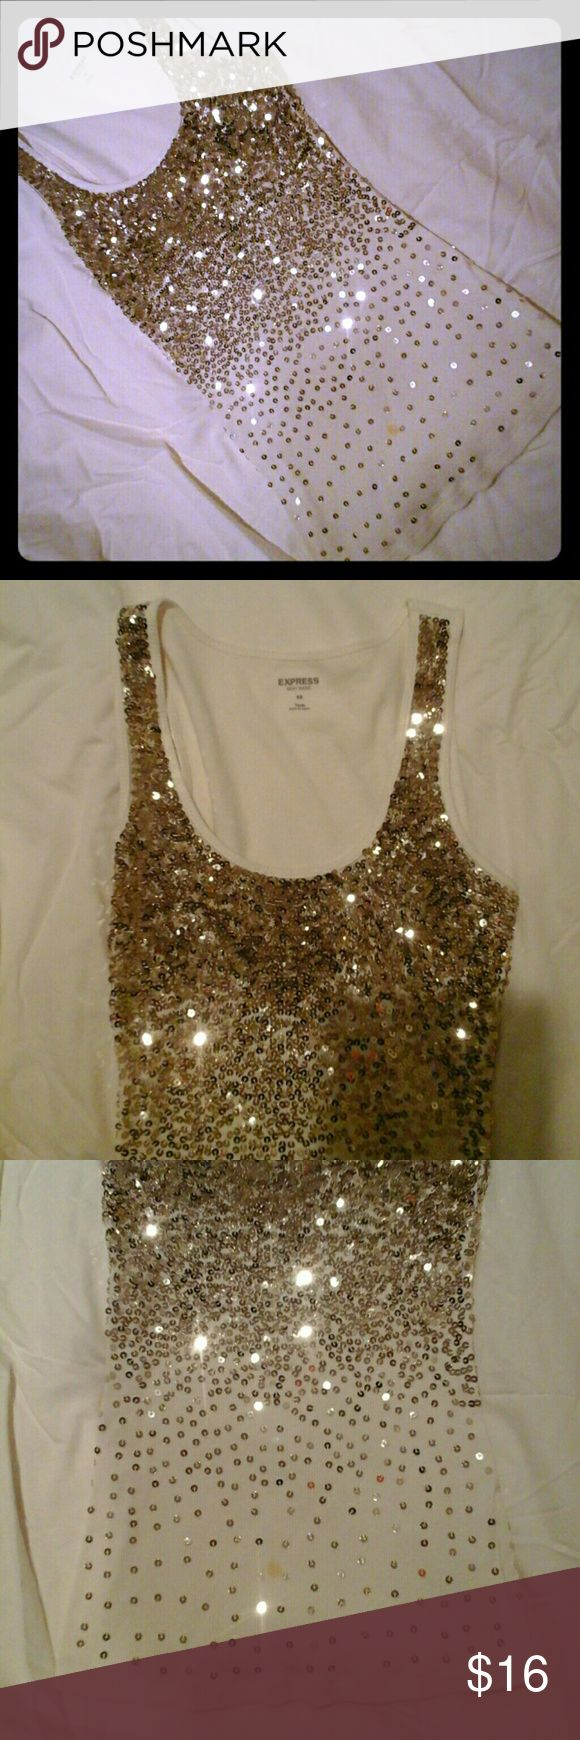 Sparkly Last pic is back of ribbed tank. Sequins on front. Tank is off white with gold sequins. Small spot will come out with gentle spot remover. Pretty sure it is just makeup Express Tops